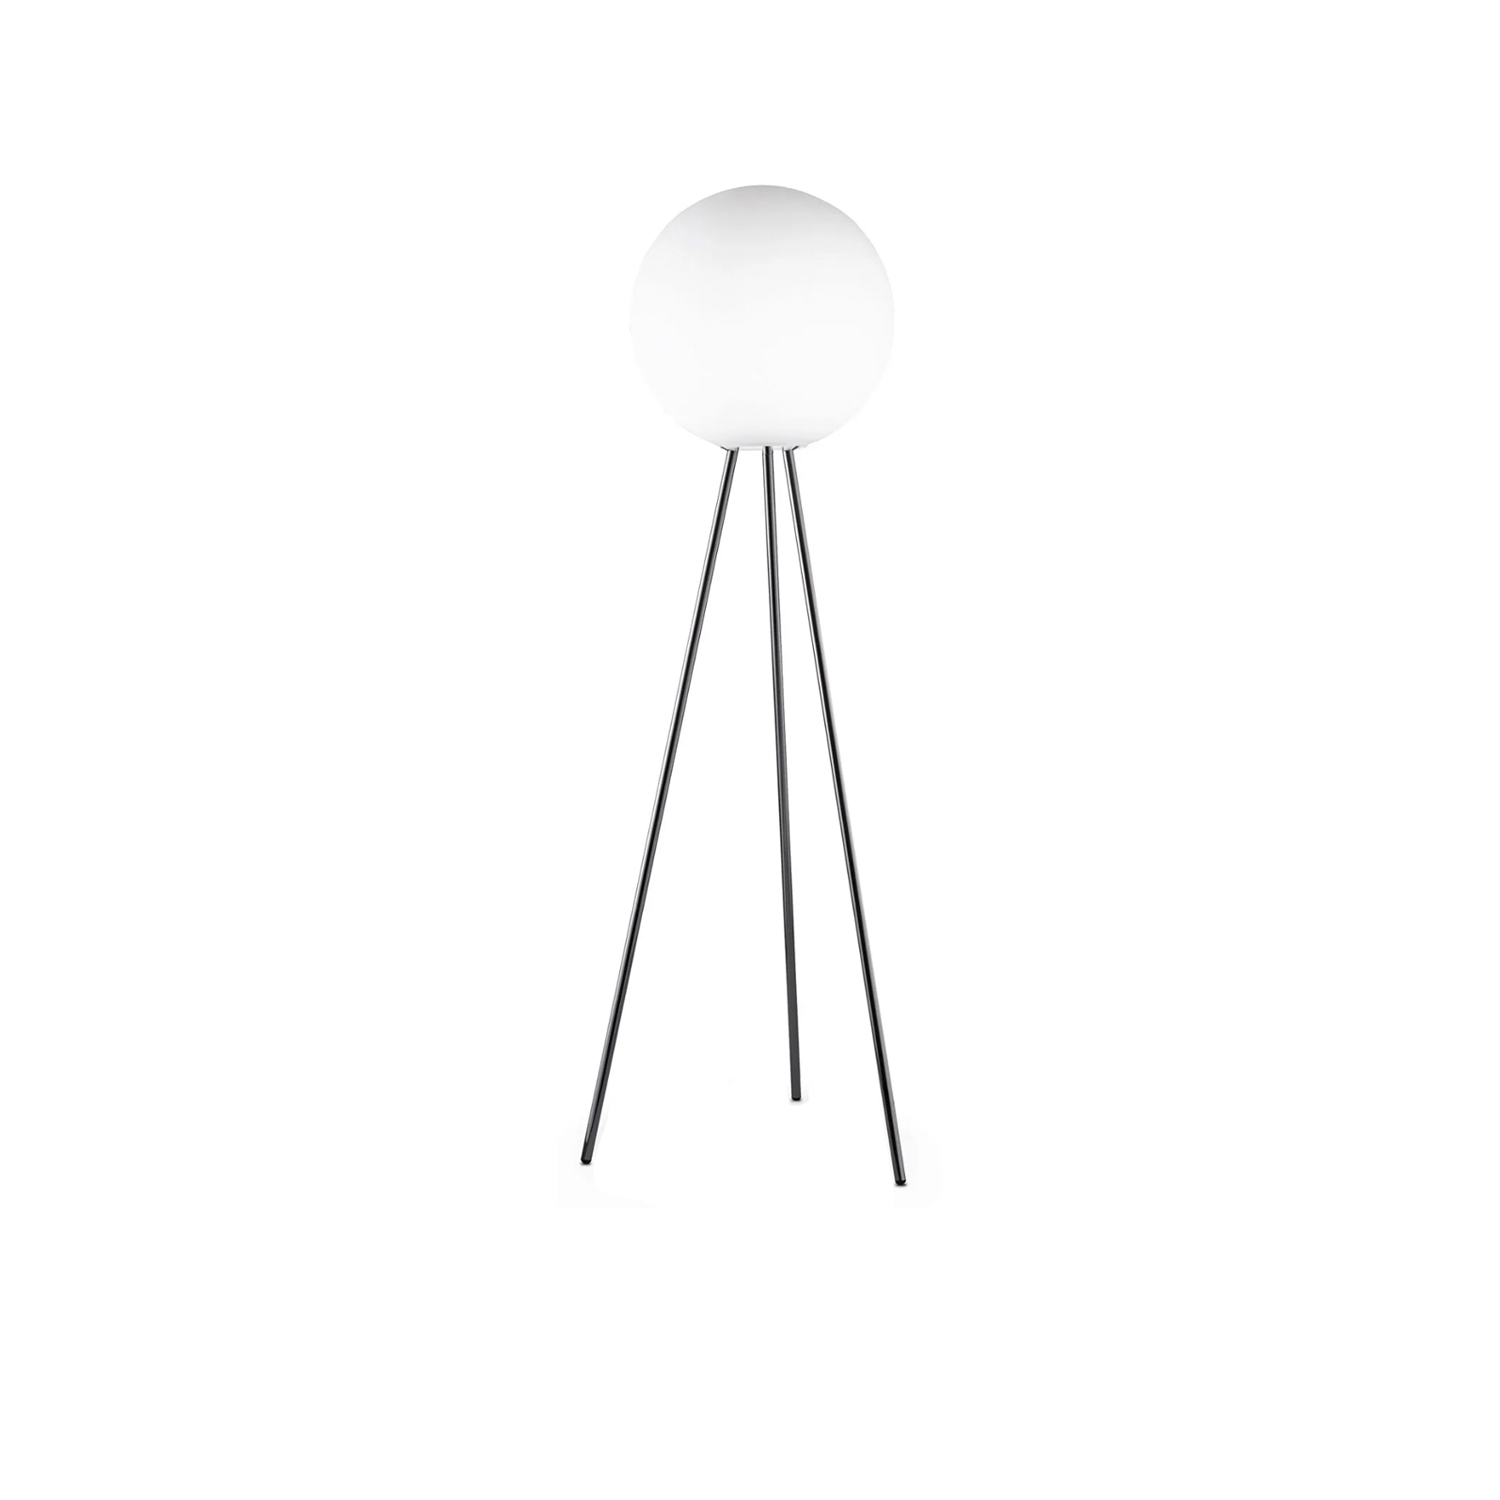 Prima Signora Floor Lamp - A magnificent globe in white blown glass crowns the chrome-plated tripod. The surprising arrangement of these understated lines produces a very well-balanced result